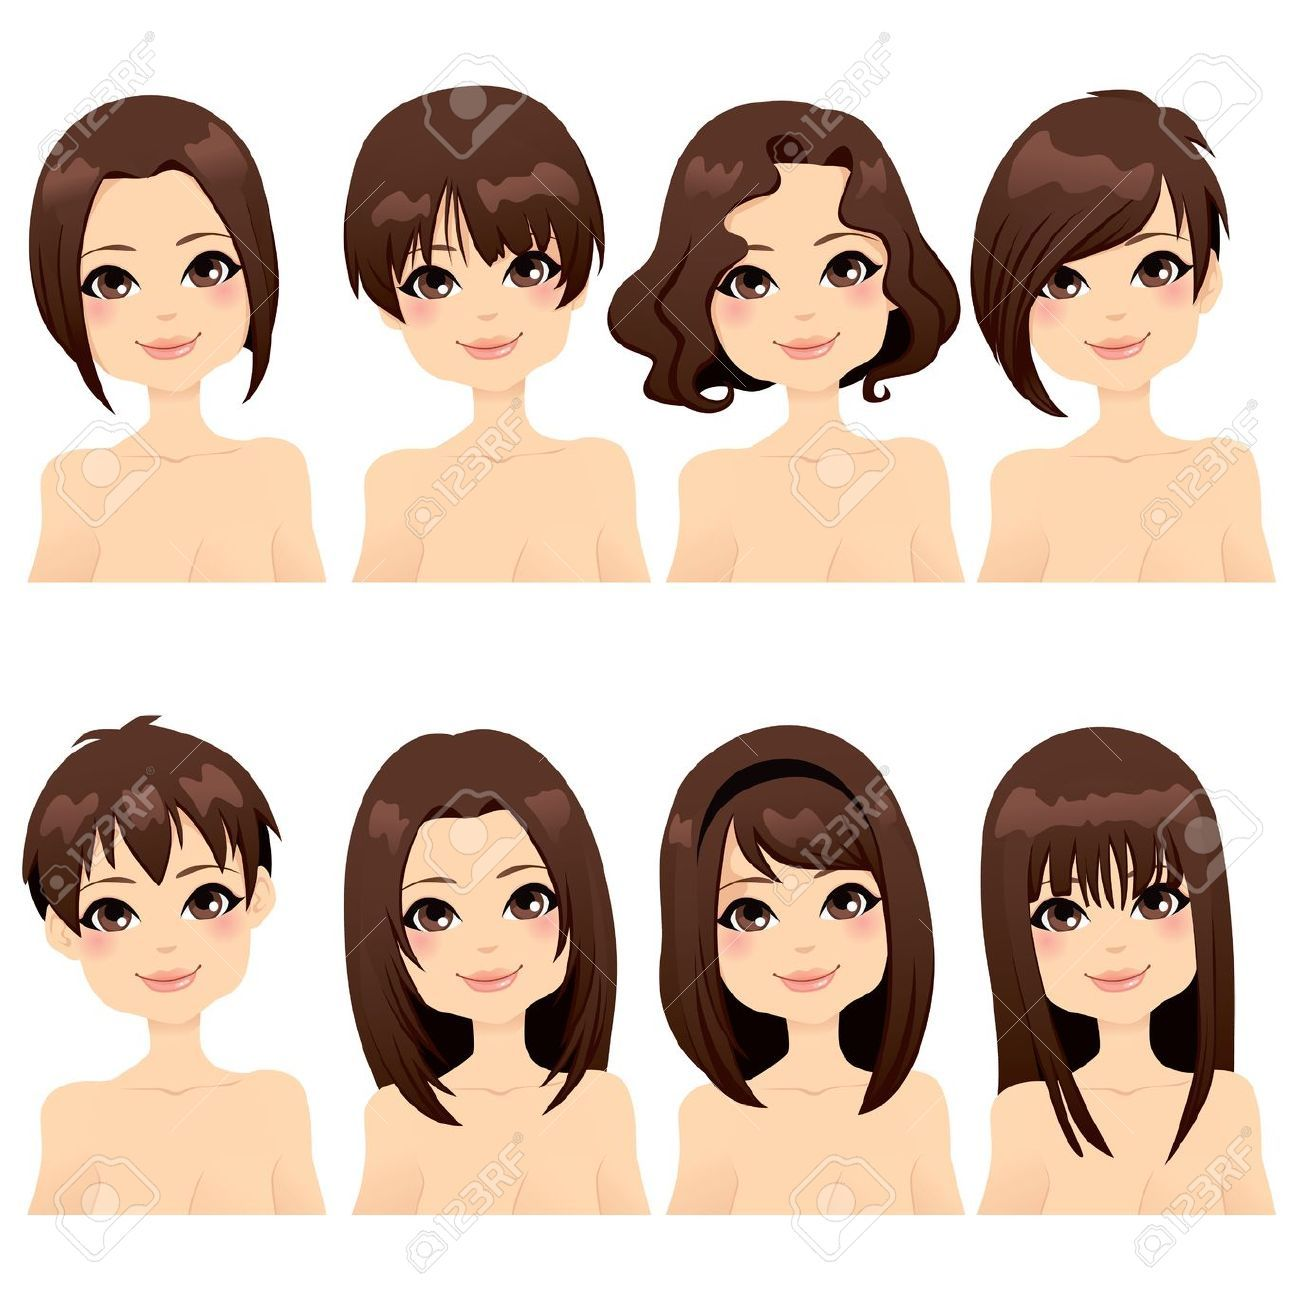 Hair Styles How To Draw Frisuren Retro Frisuren Und Frisuren 2015